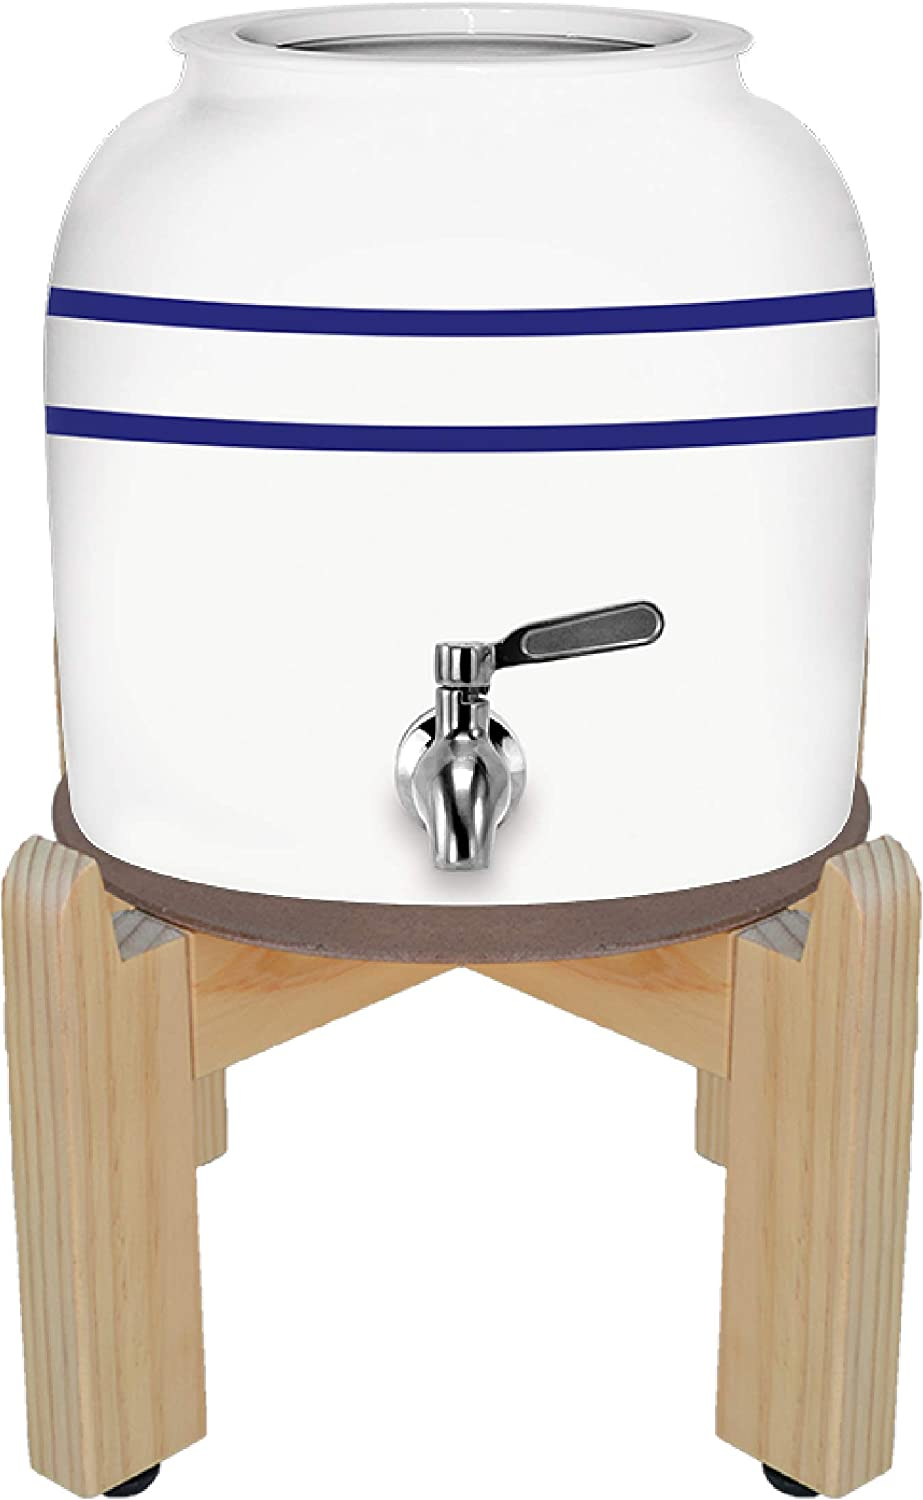 Geo Sports Porcelain Crock Water Dispenser with 8 Inch Wood Stand, Ceramic Lid and Stainless Steel Spigot Included (Blue Stripe)